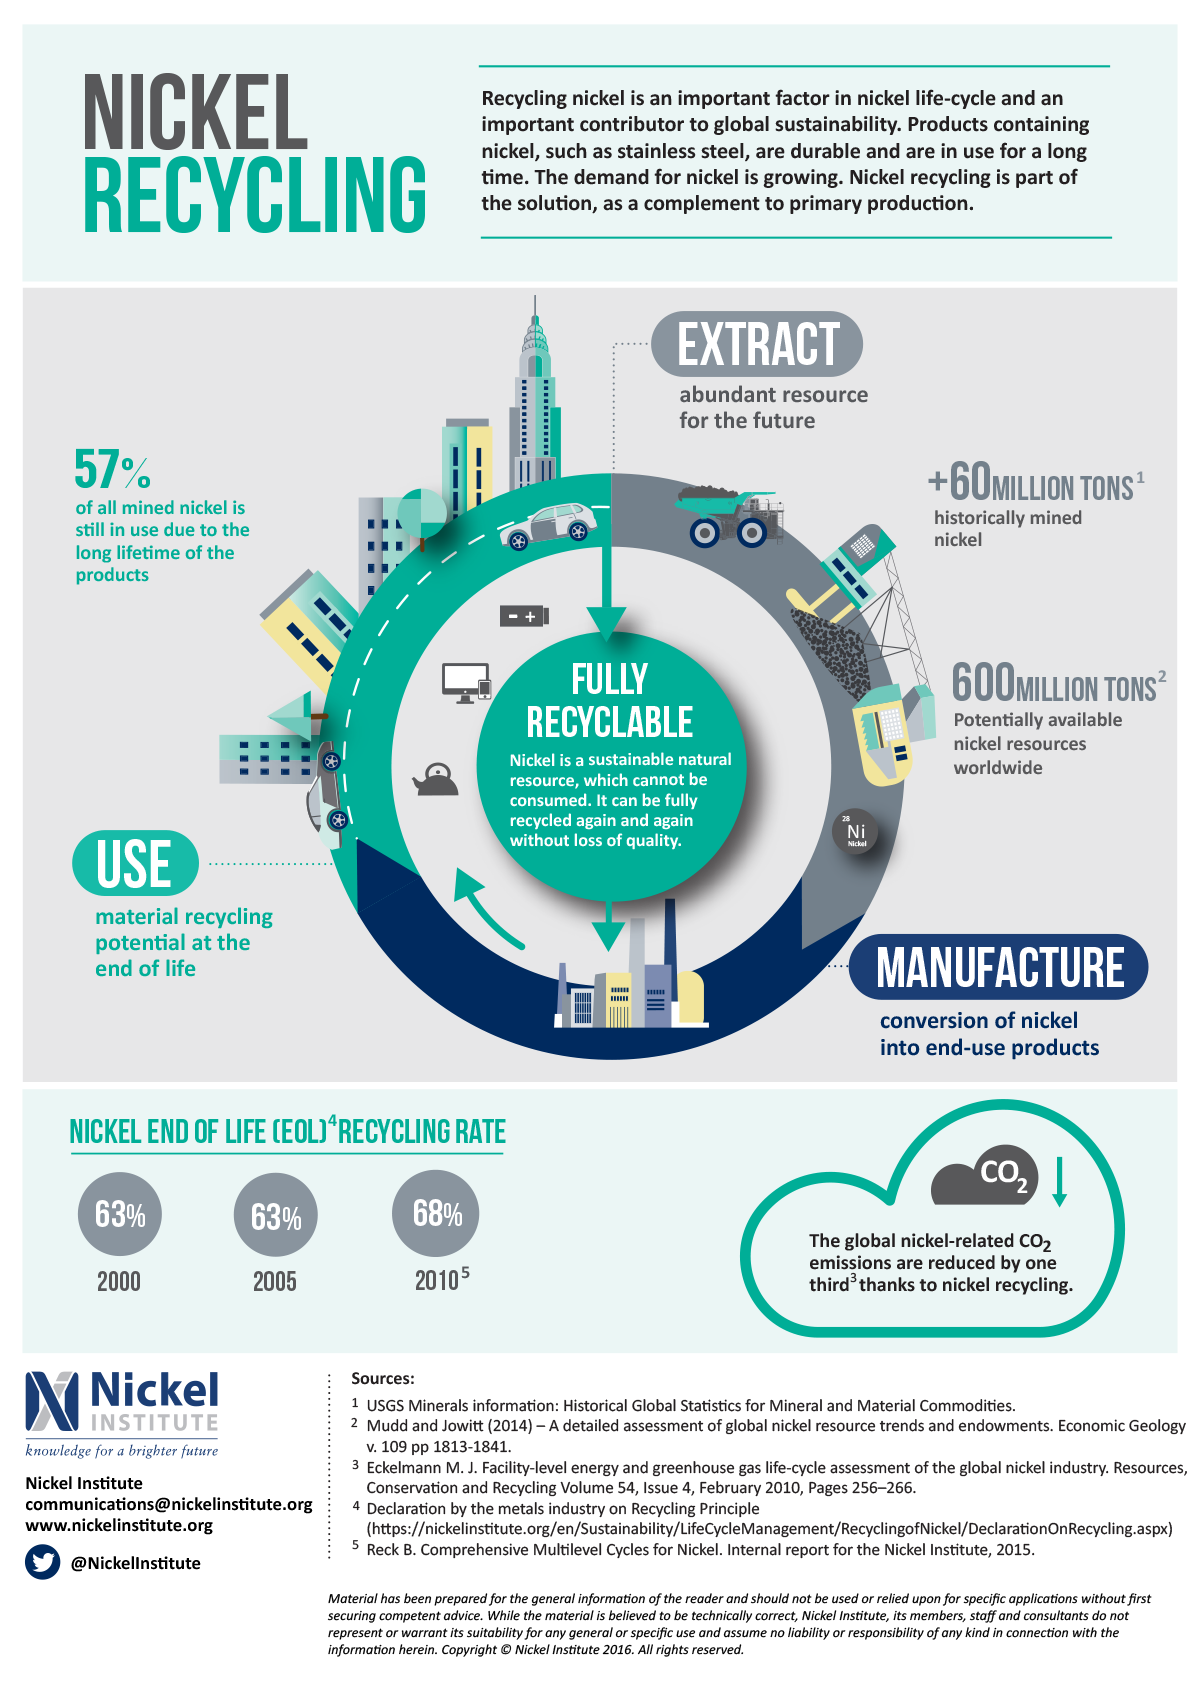 Nickel Recycling